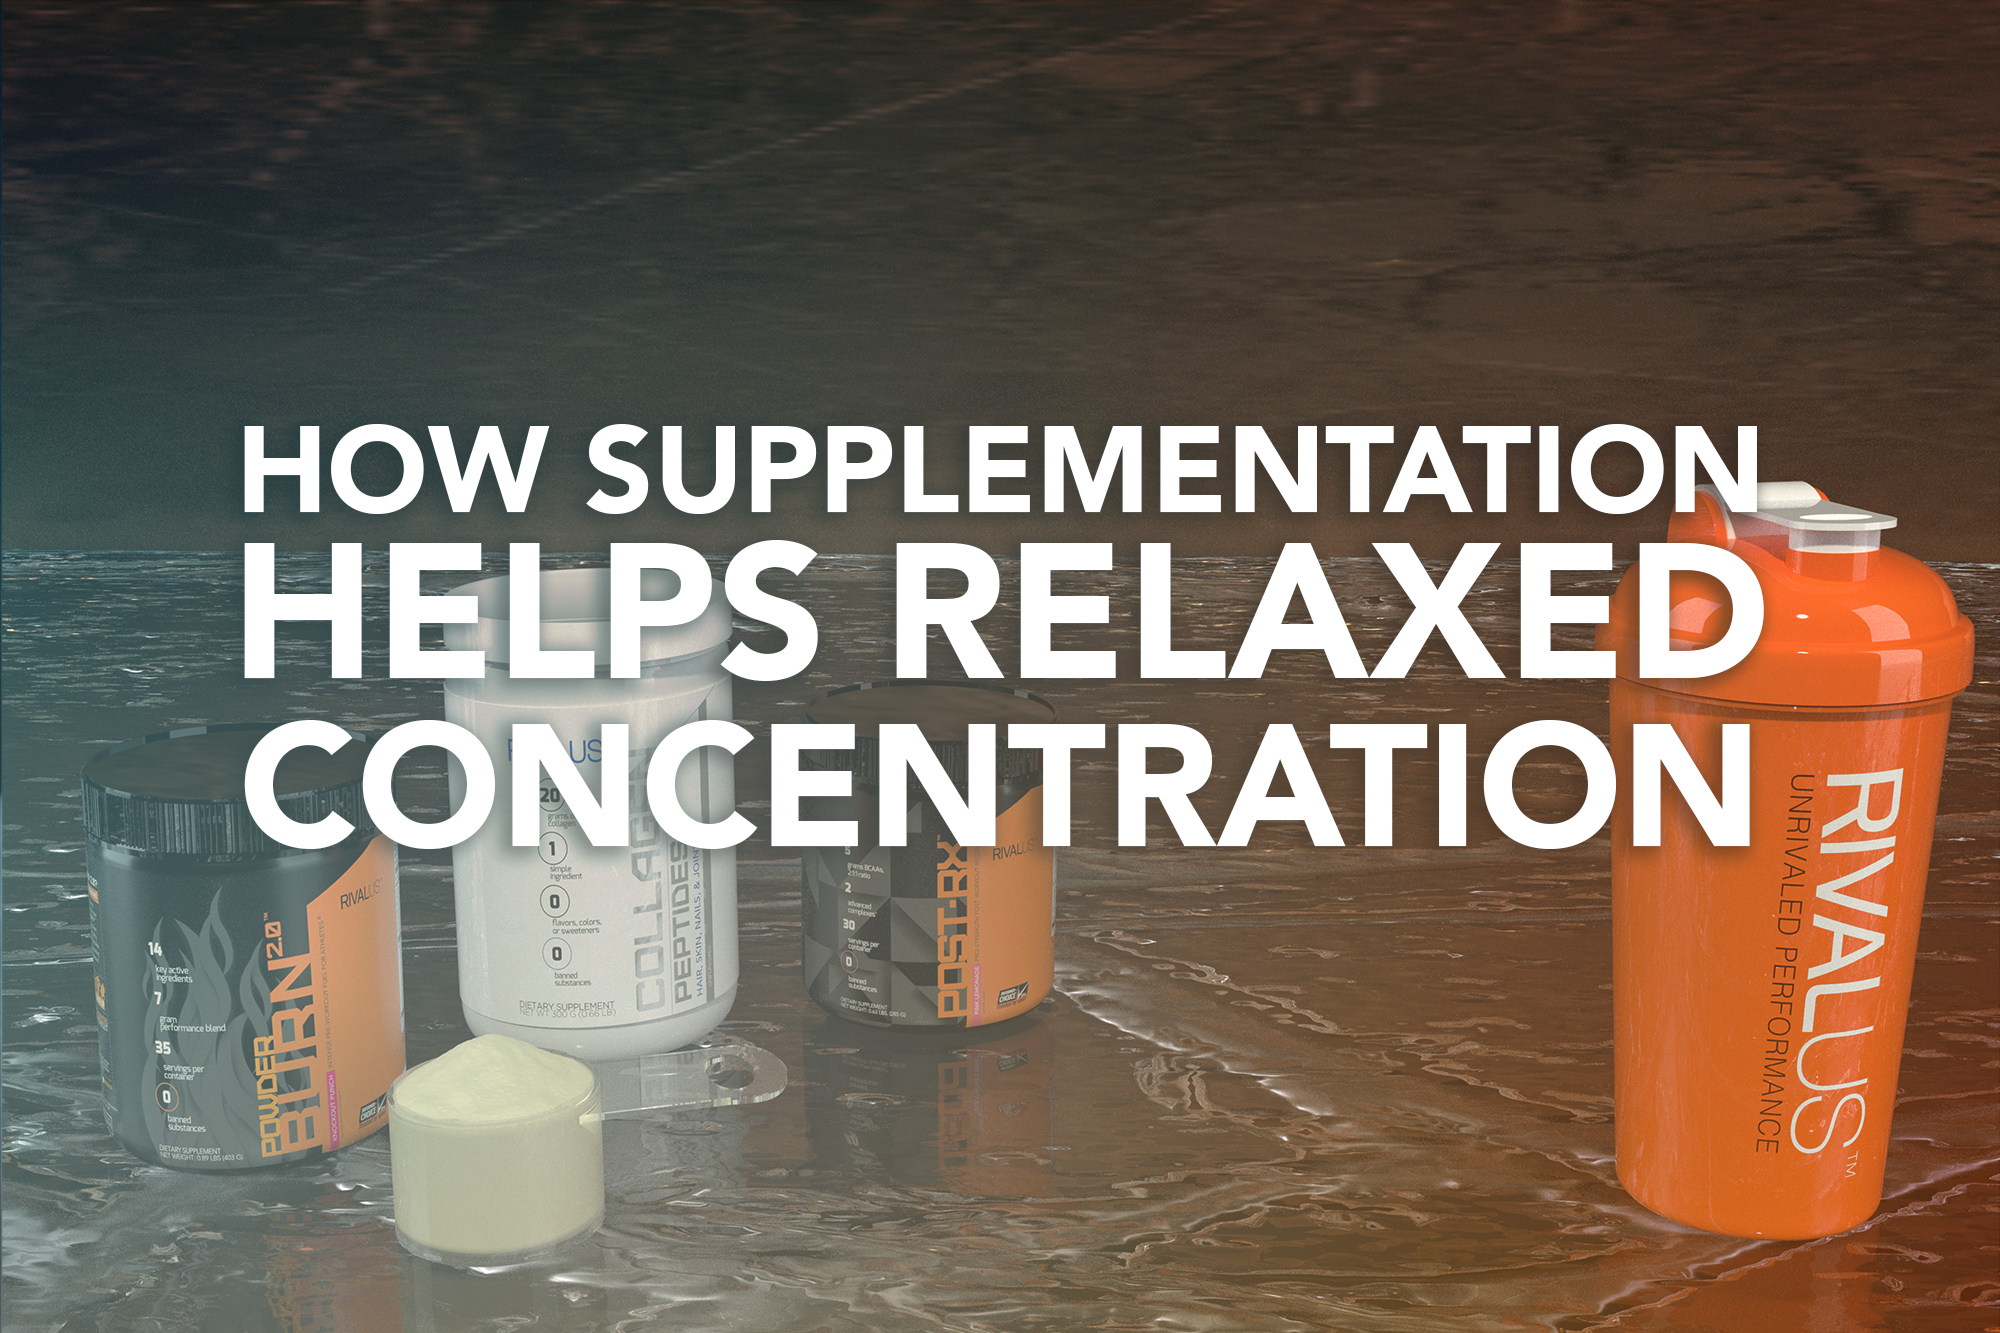 How Supplementation Helps Relaxed Concentration